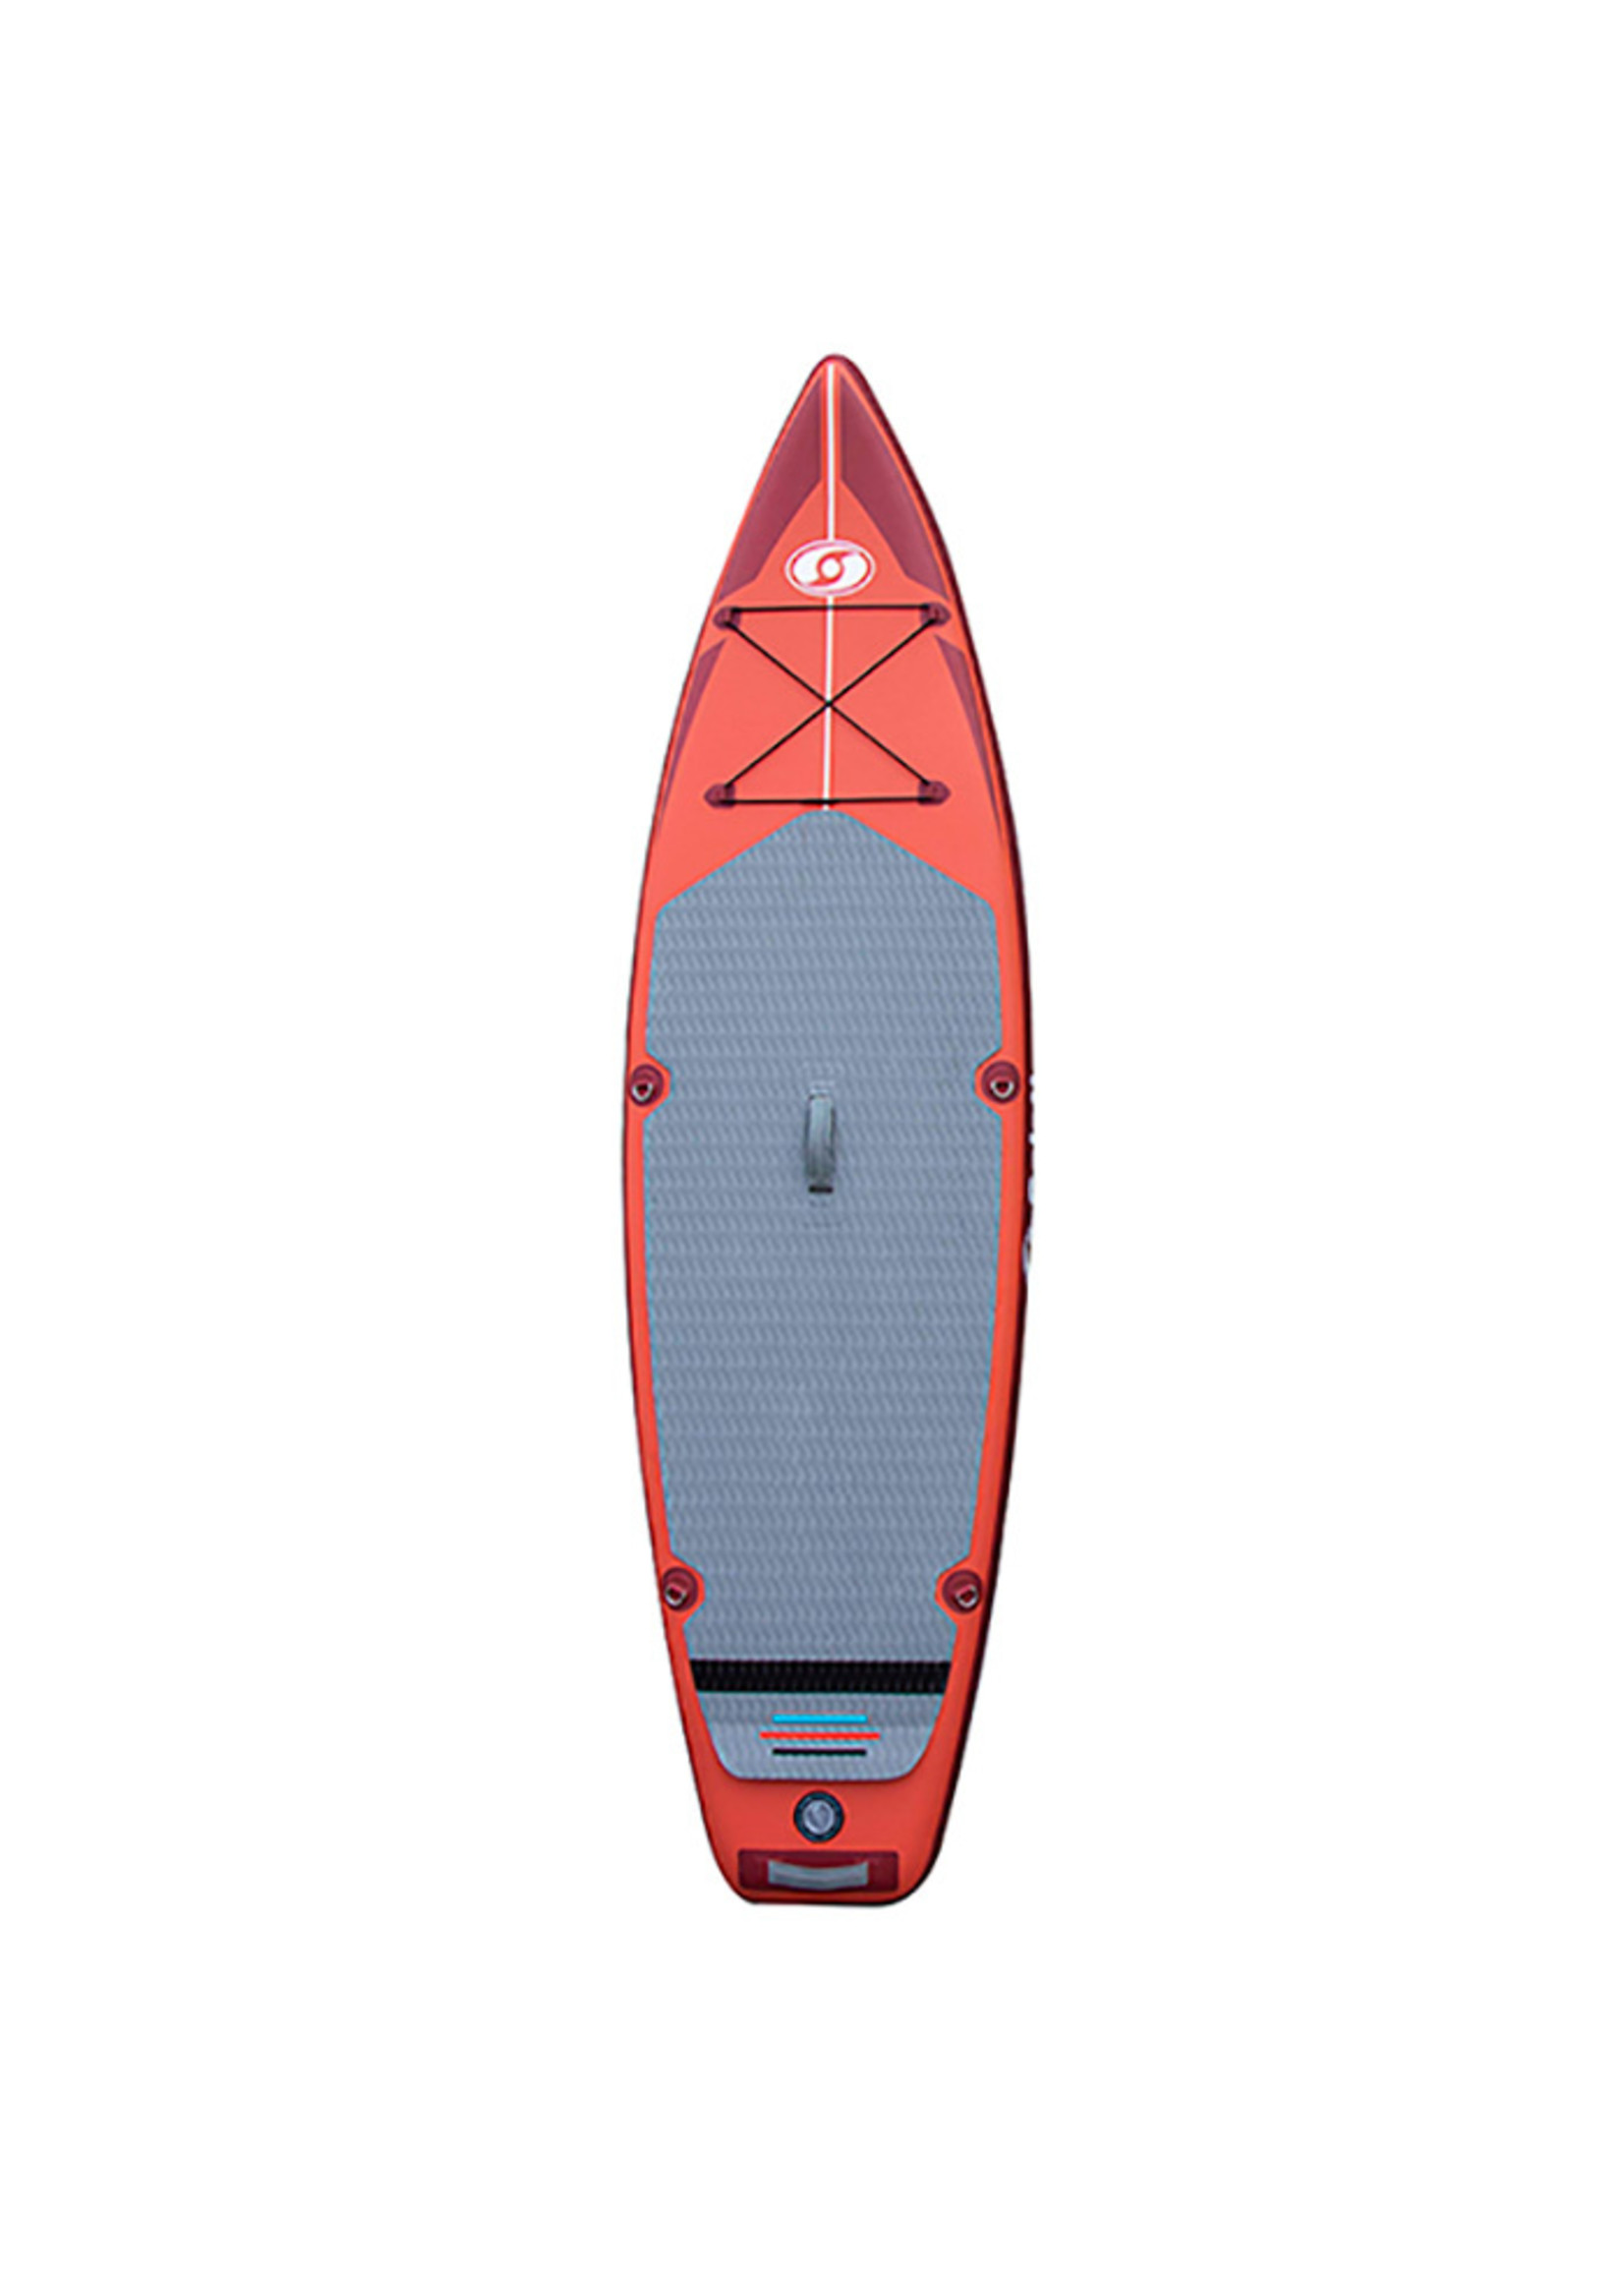 Solstice Solstice 10' Inflateable SUP Package